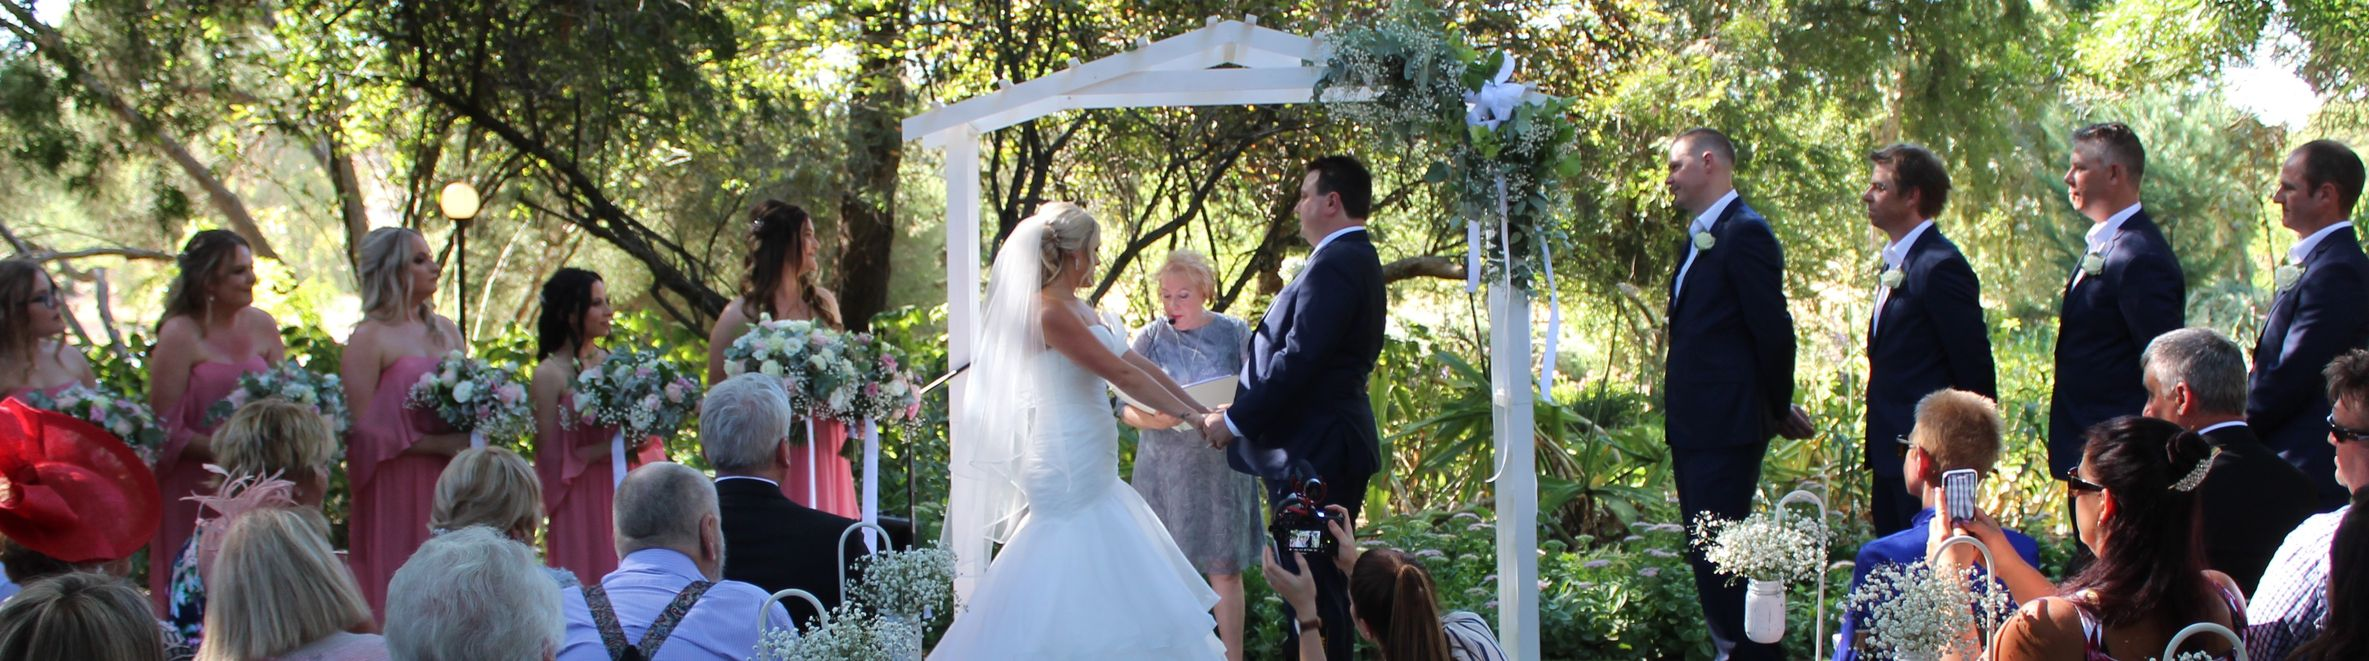 Marriage Celebrant Above And Beyond